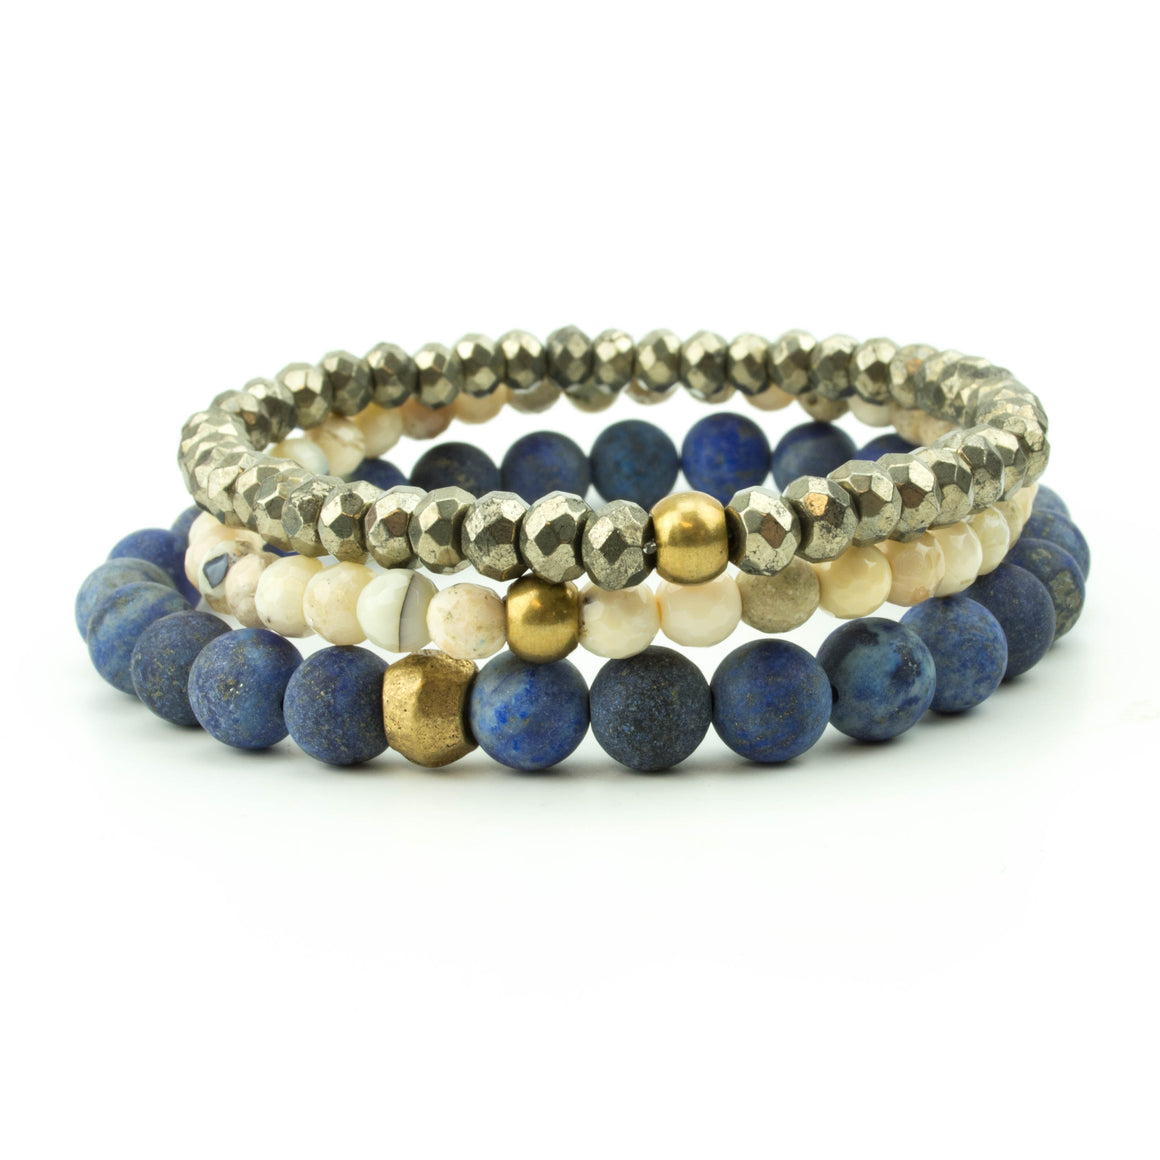 Men's stretch bracelet stack with pyrite, bone, lapis.